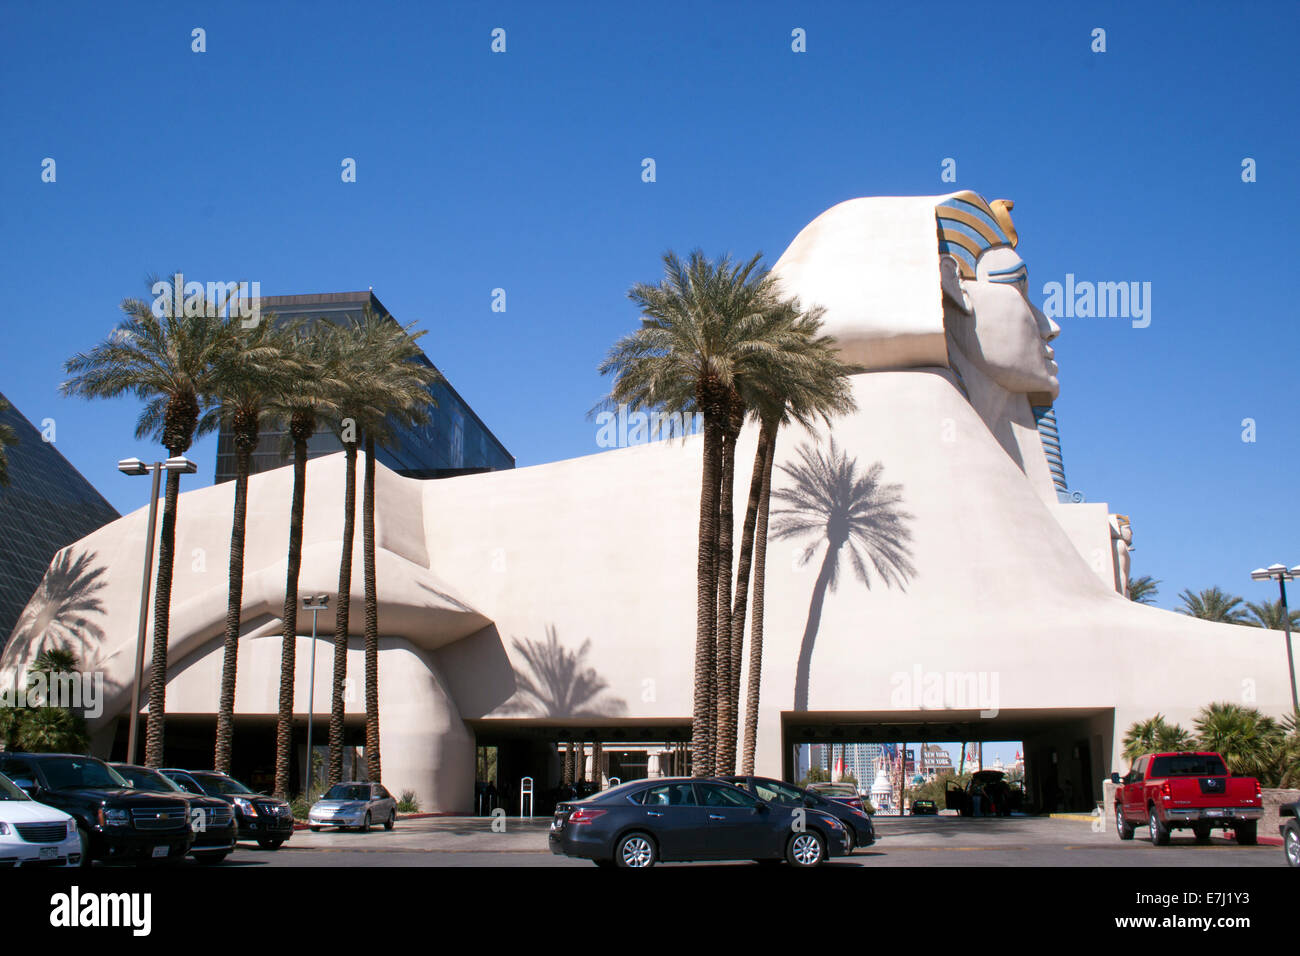 Le Luxor casino à Las Vegas au Nevada Photo Stock